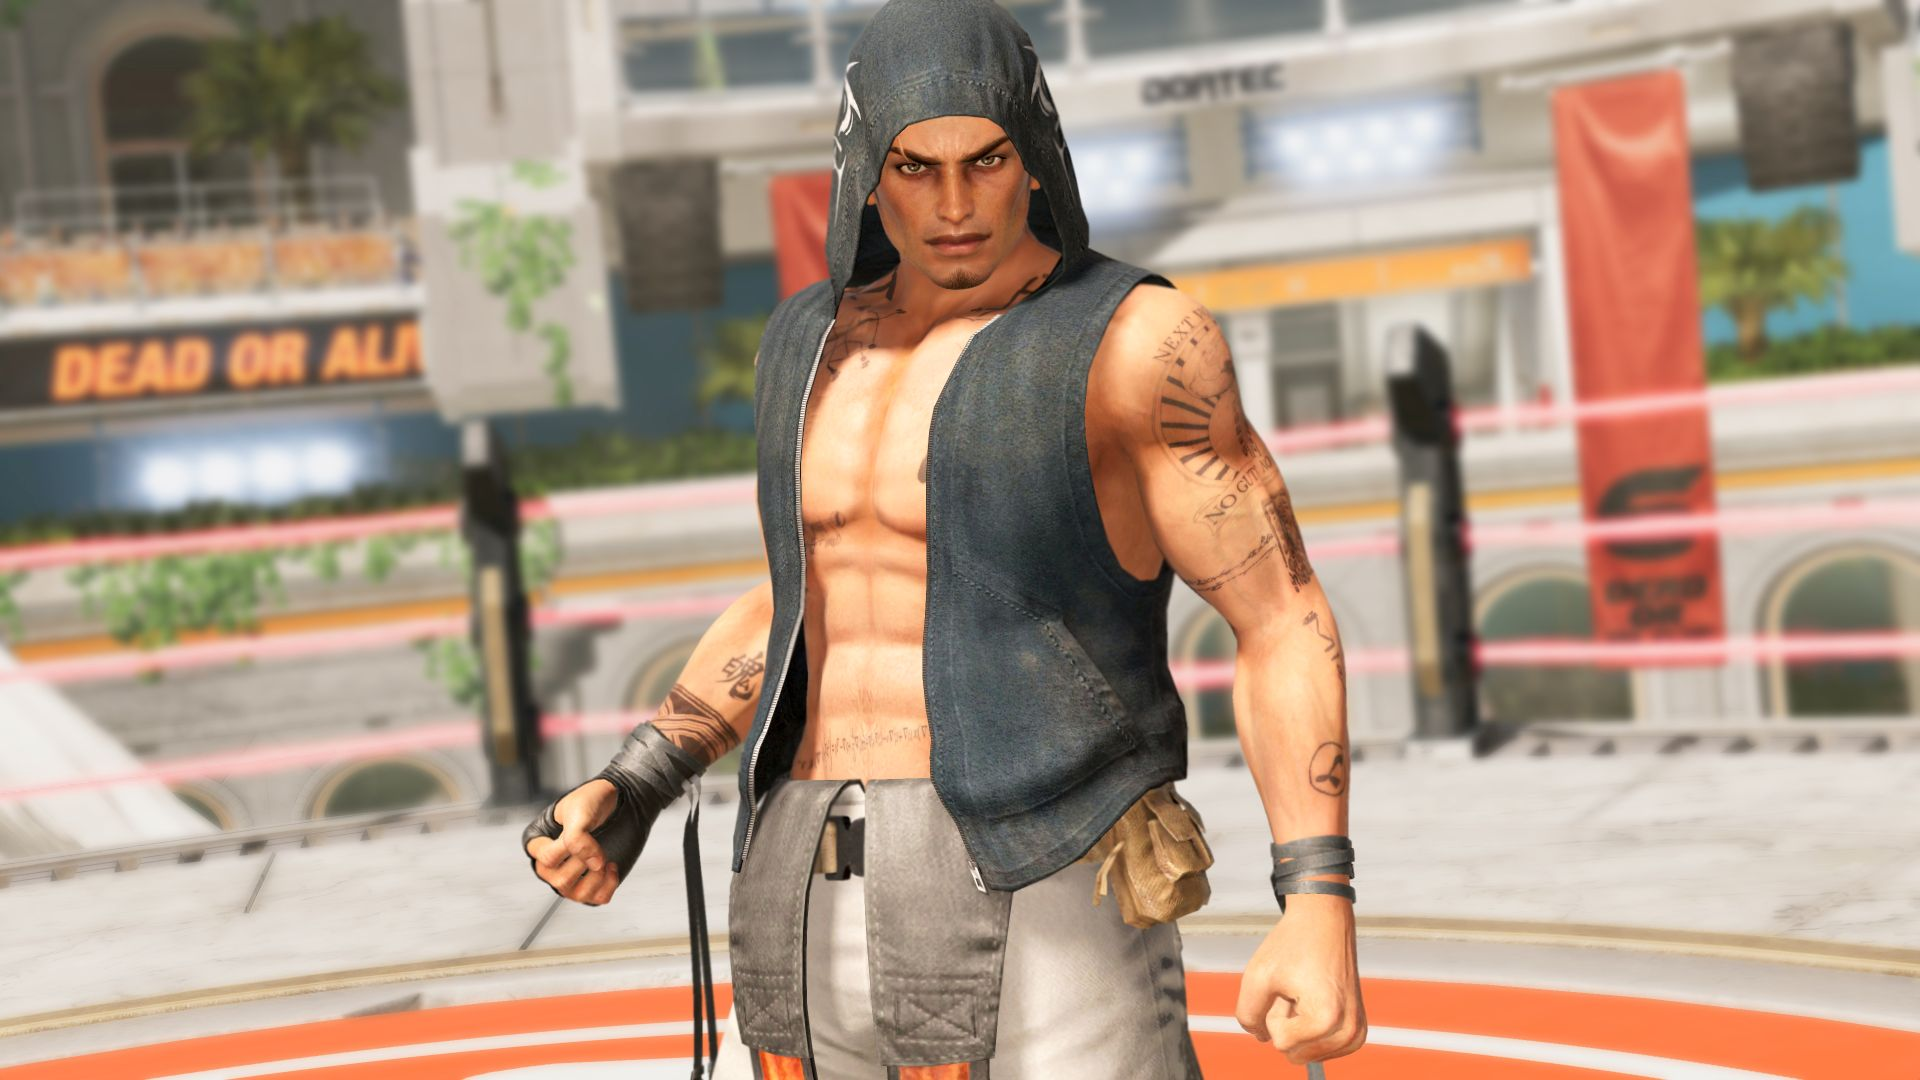 Rig returns in Dead or Alive 6 alongside newcomer Diego